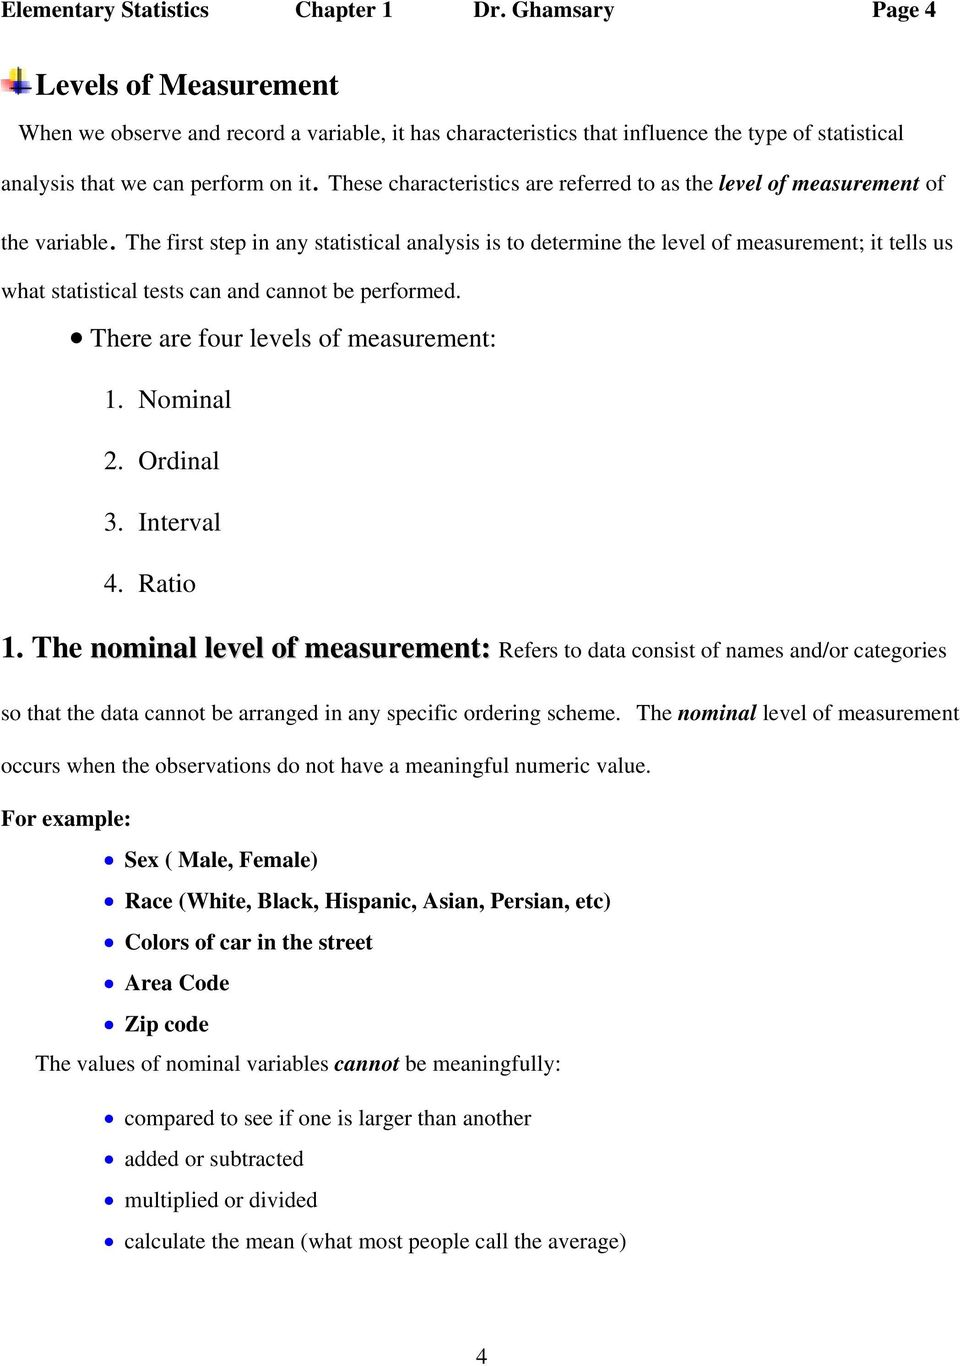 These characteristics are referred to as the level of measurement of the variable.